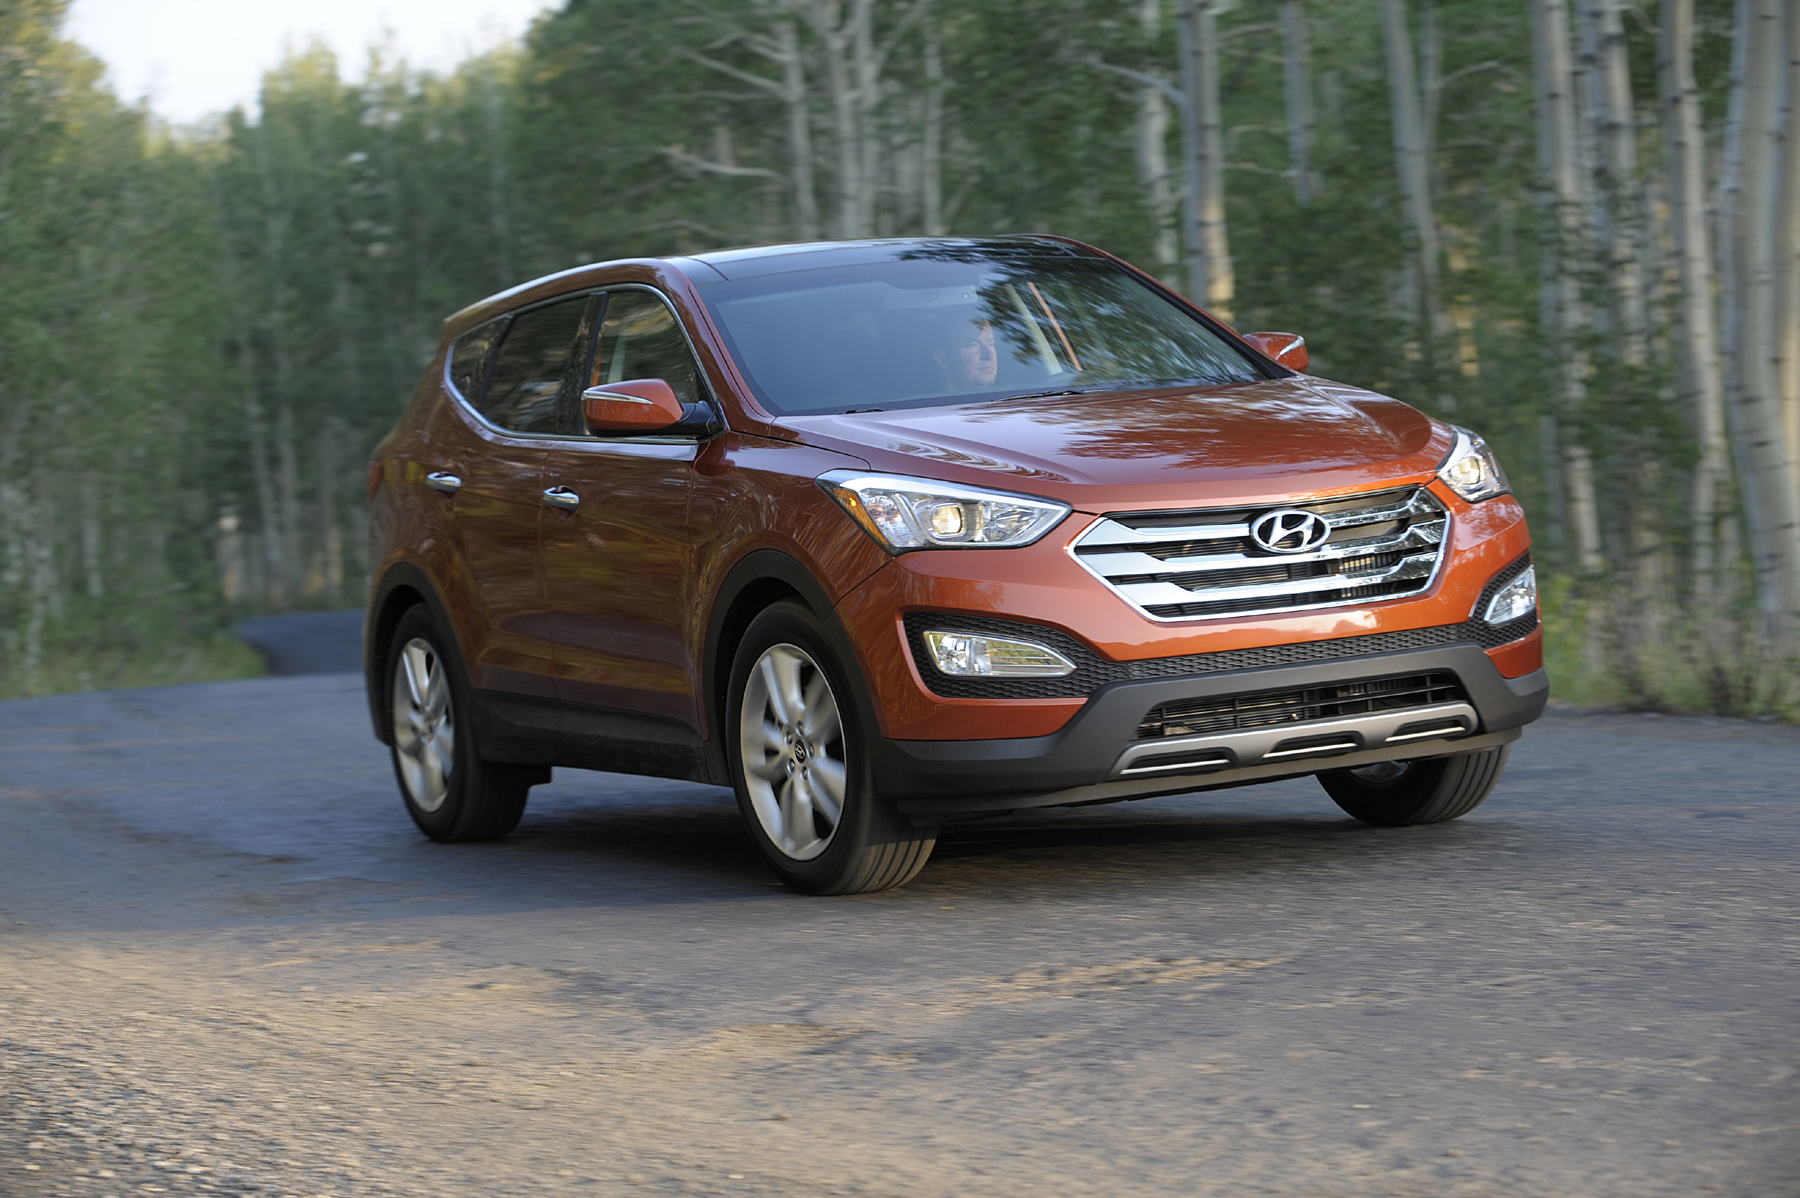 Manufacturer photo: The all-new third-generation Santa Fe launches in a five-passenger model and a longer wheelbase three-row, seven-passenger model